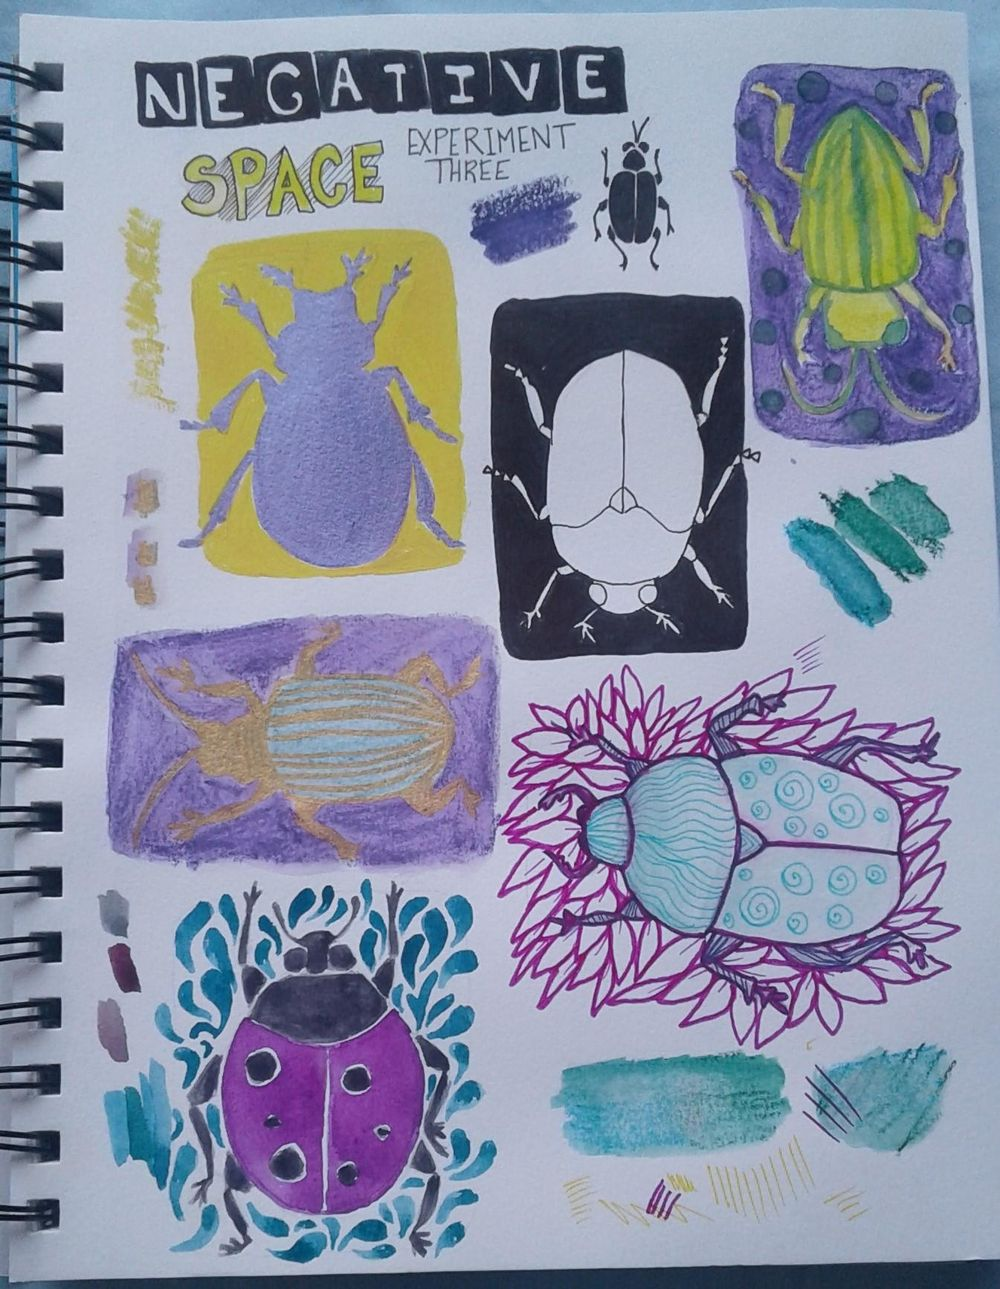 Finding My Illistration Style in 6 Simple Experiments - image 3 - student project